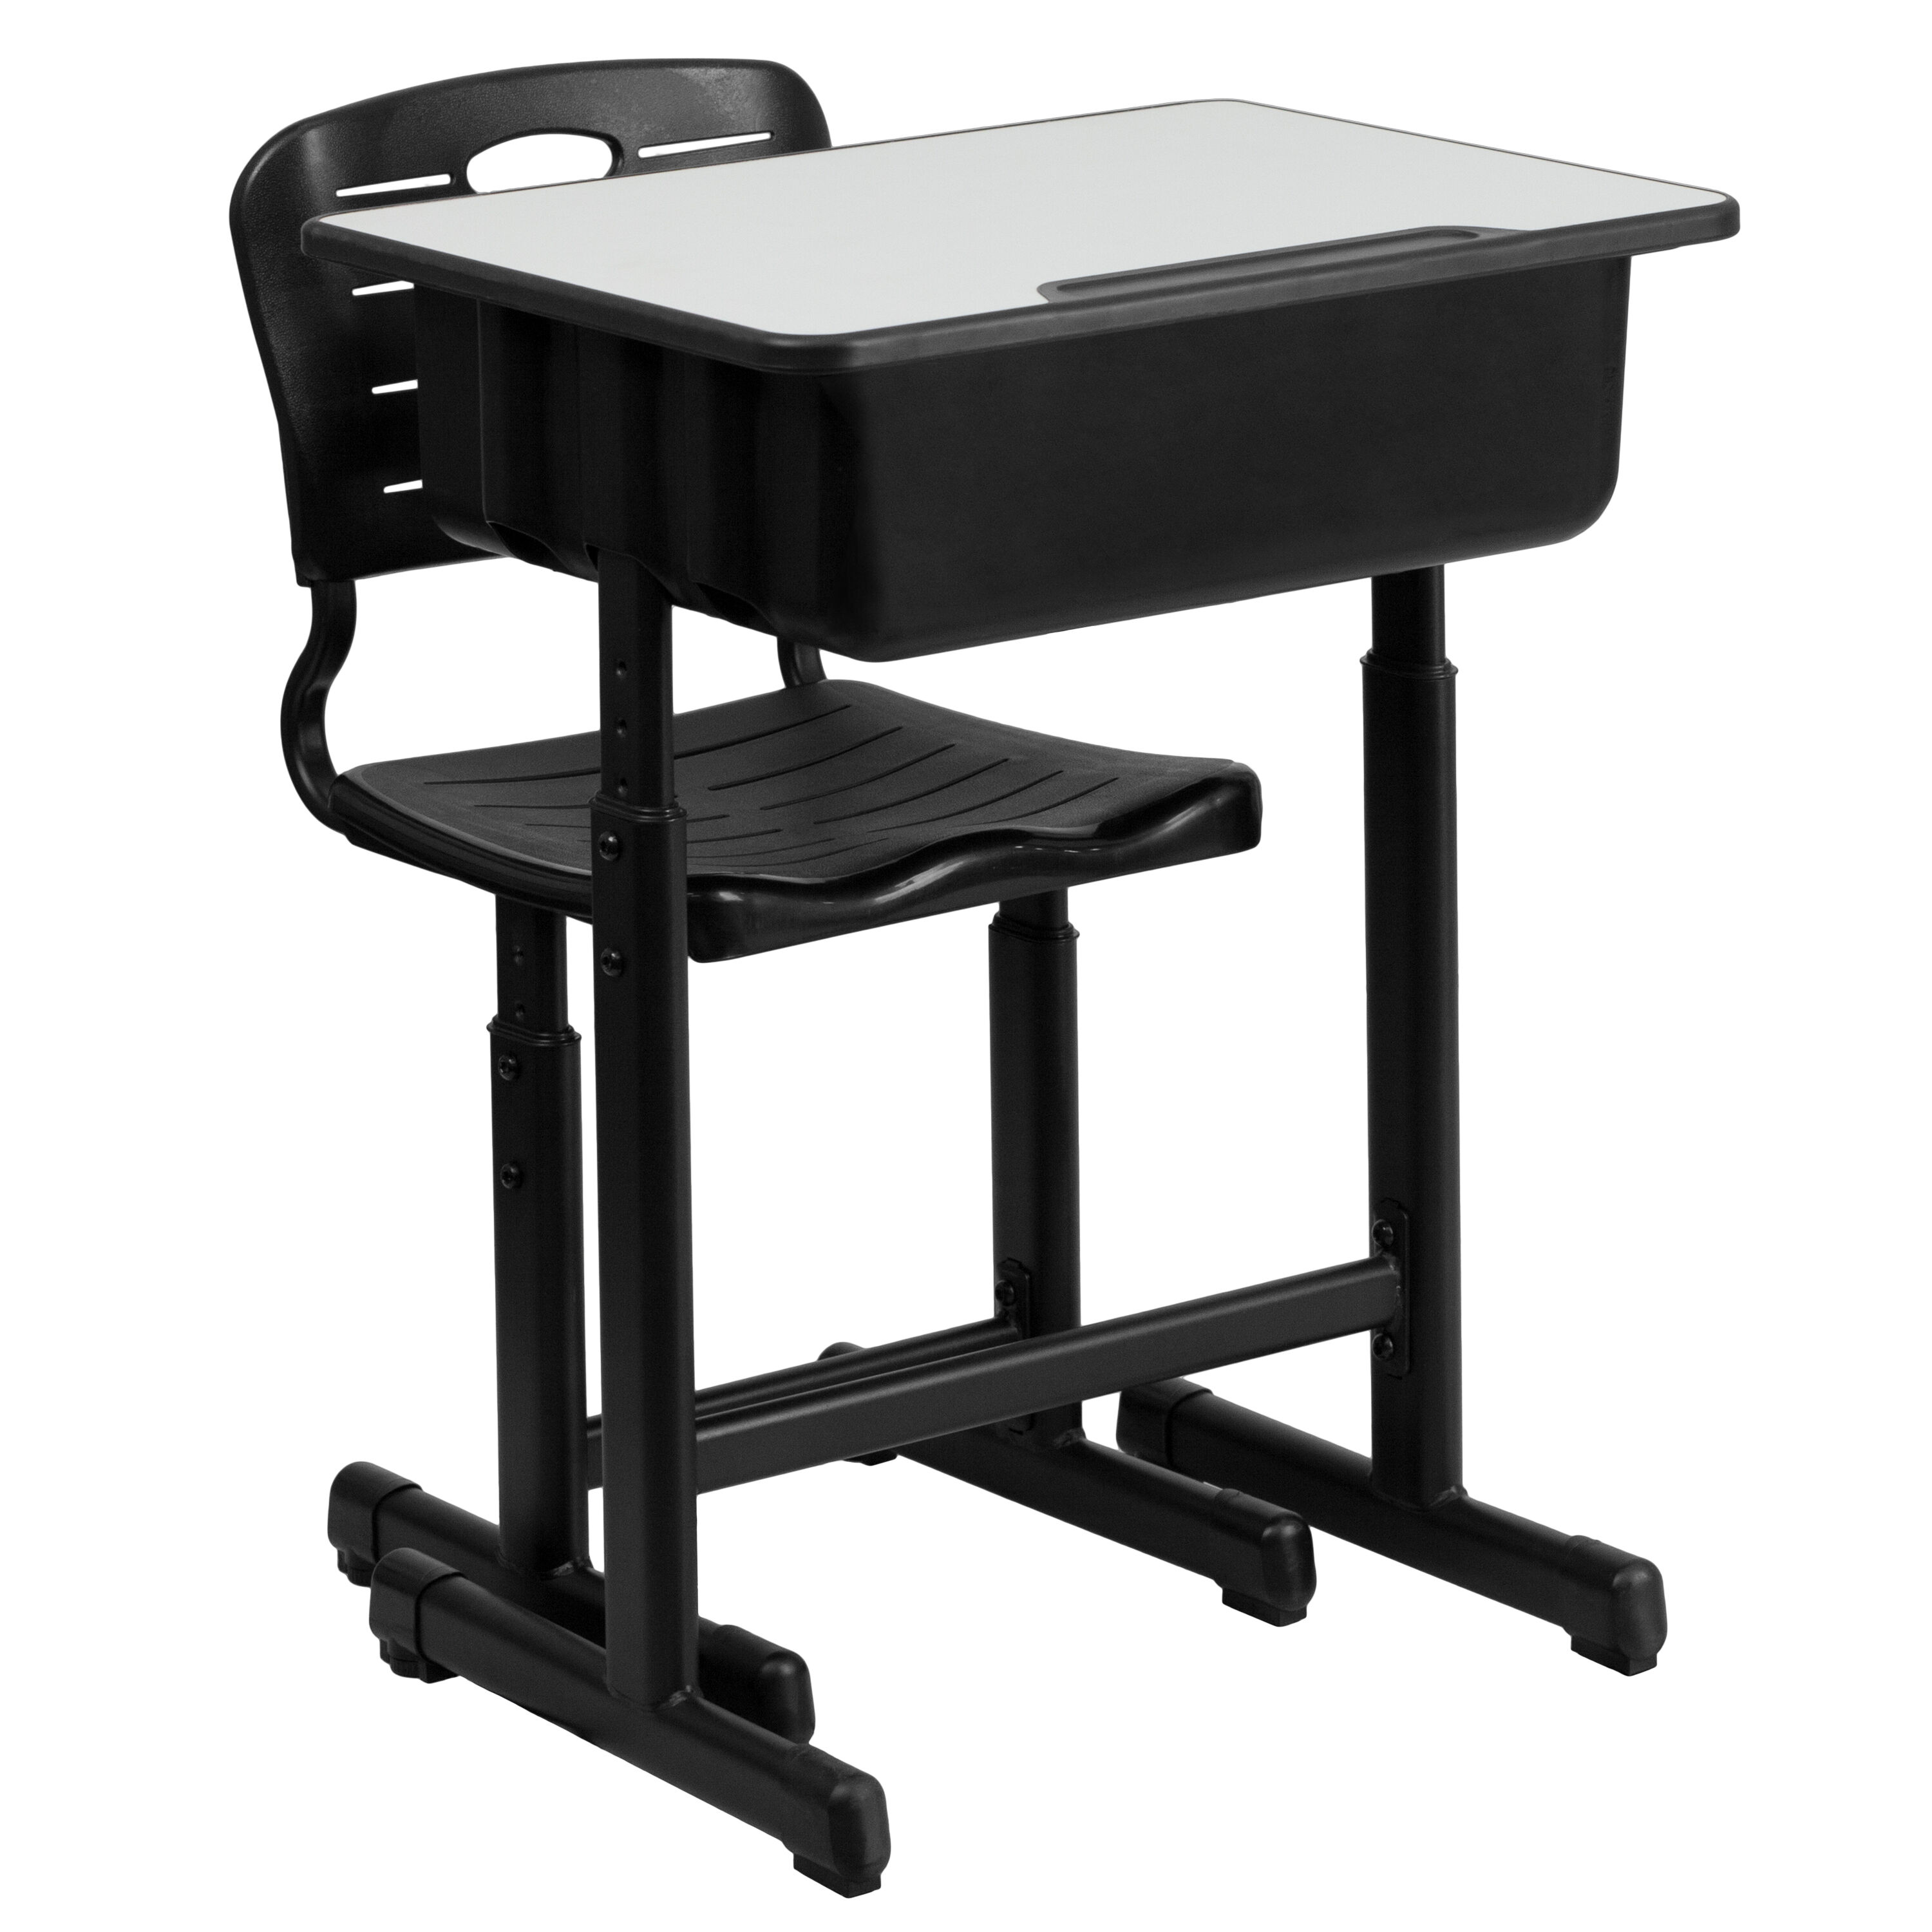 Our Adjustable Height Student Desk and Chair with Black